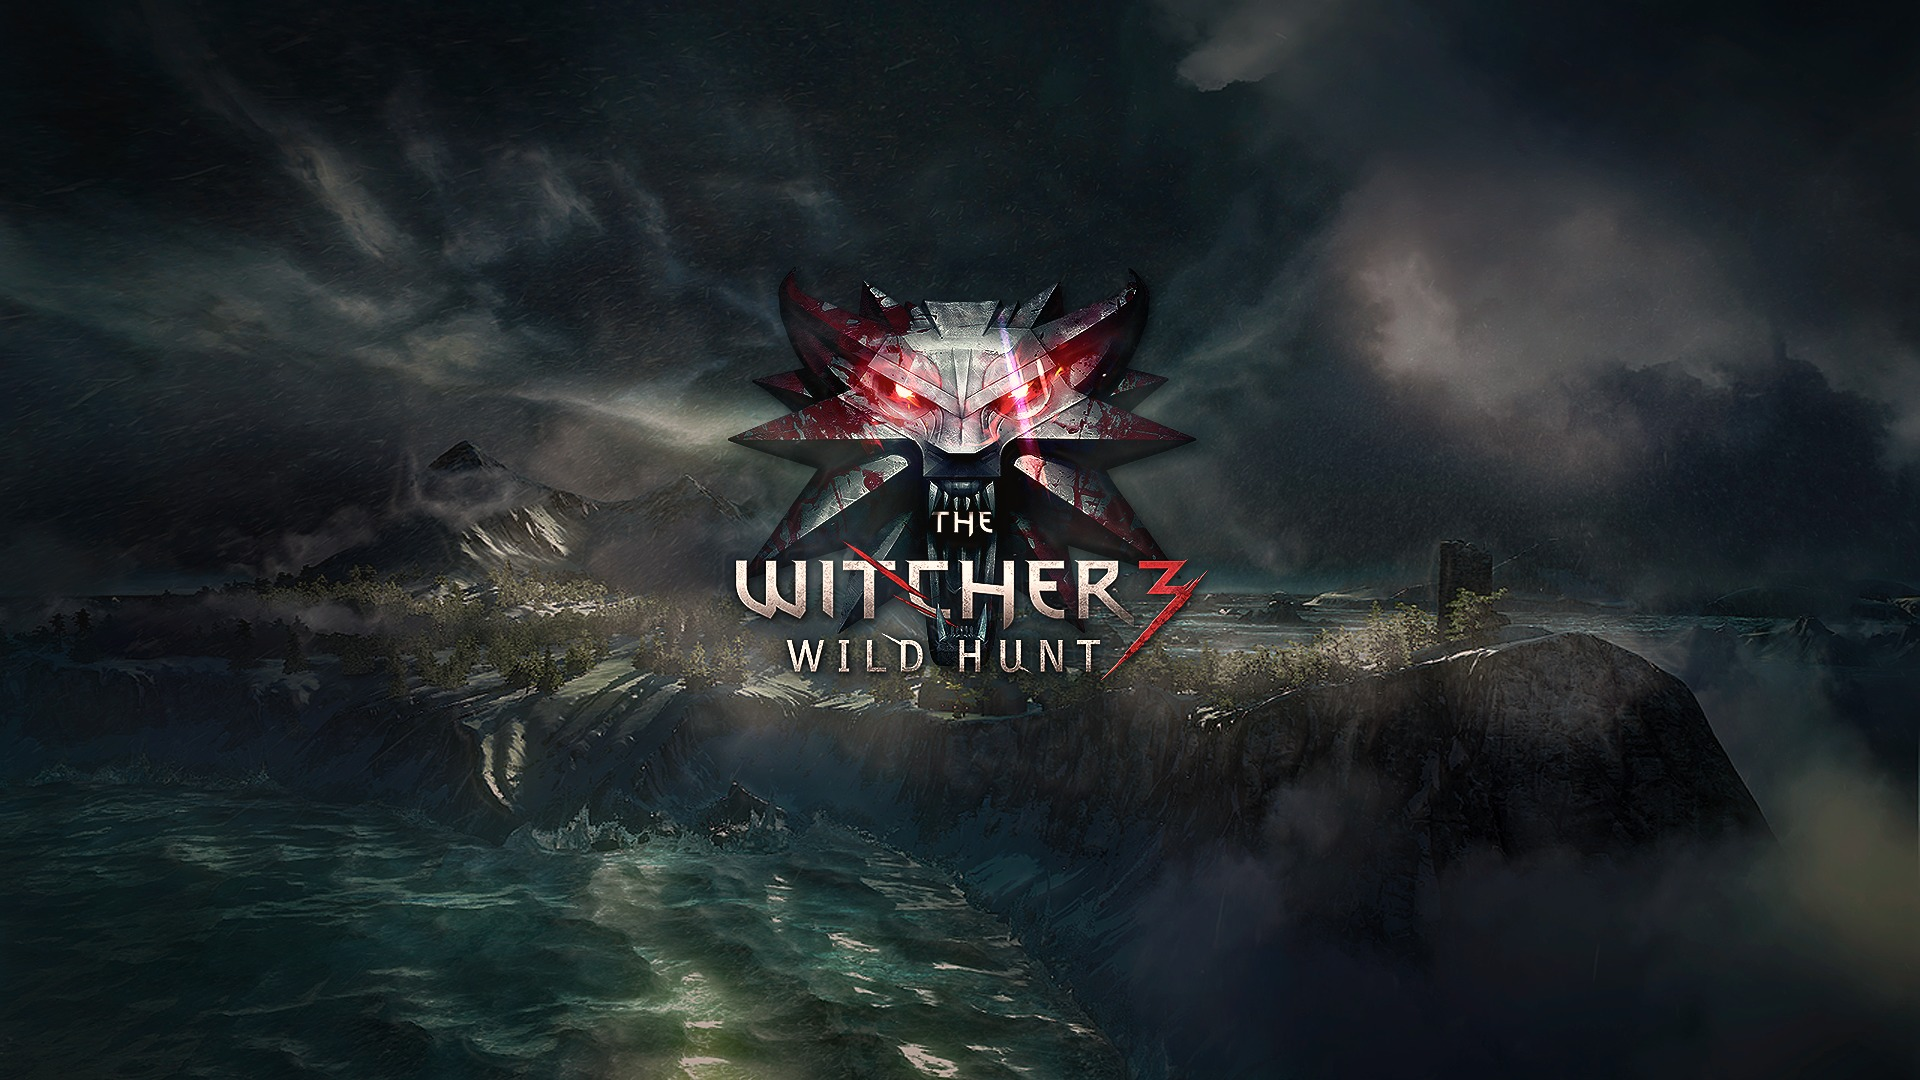 The Witcher 3 Wallpaper 1920x1080: Witcher 3 1080p Wallpaper